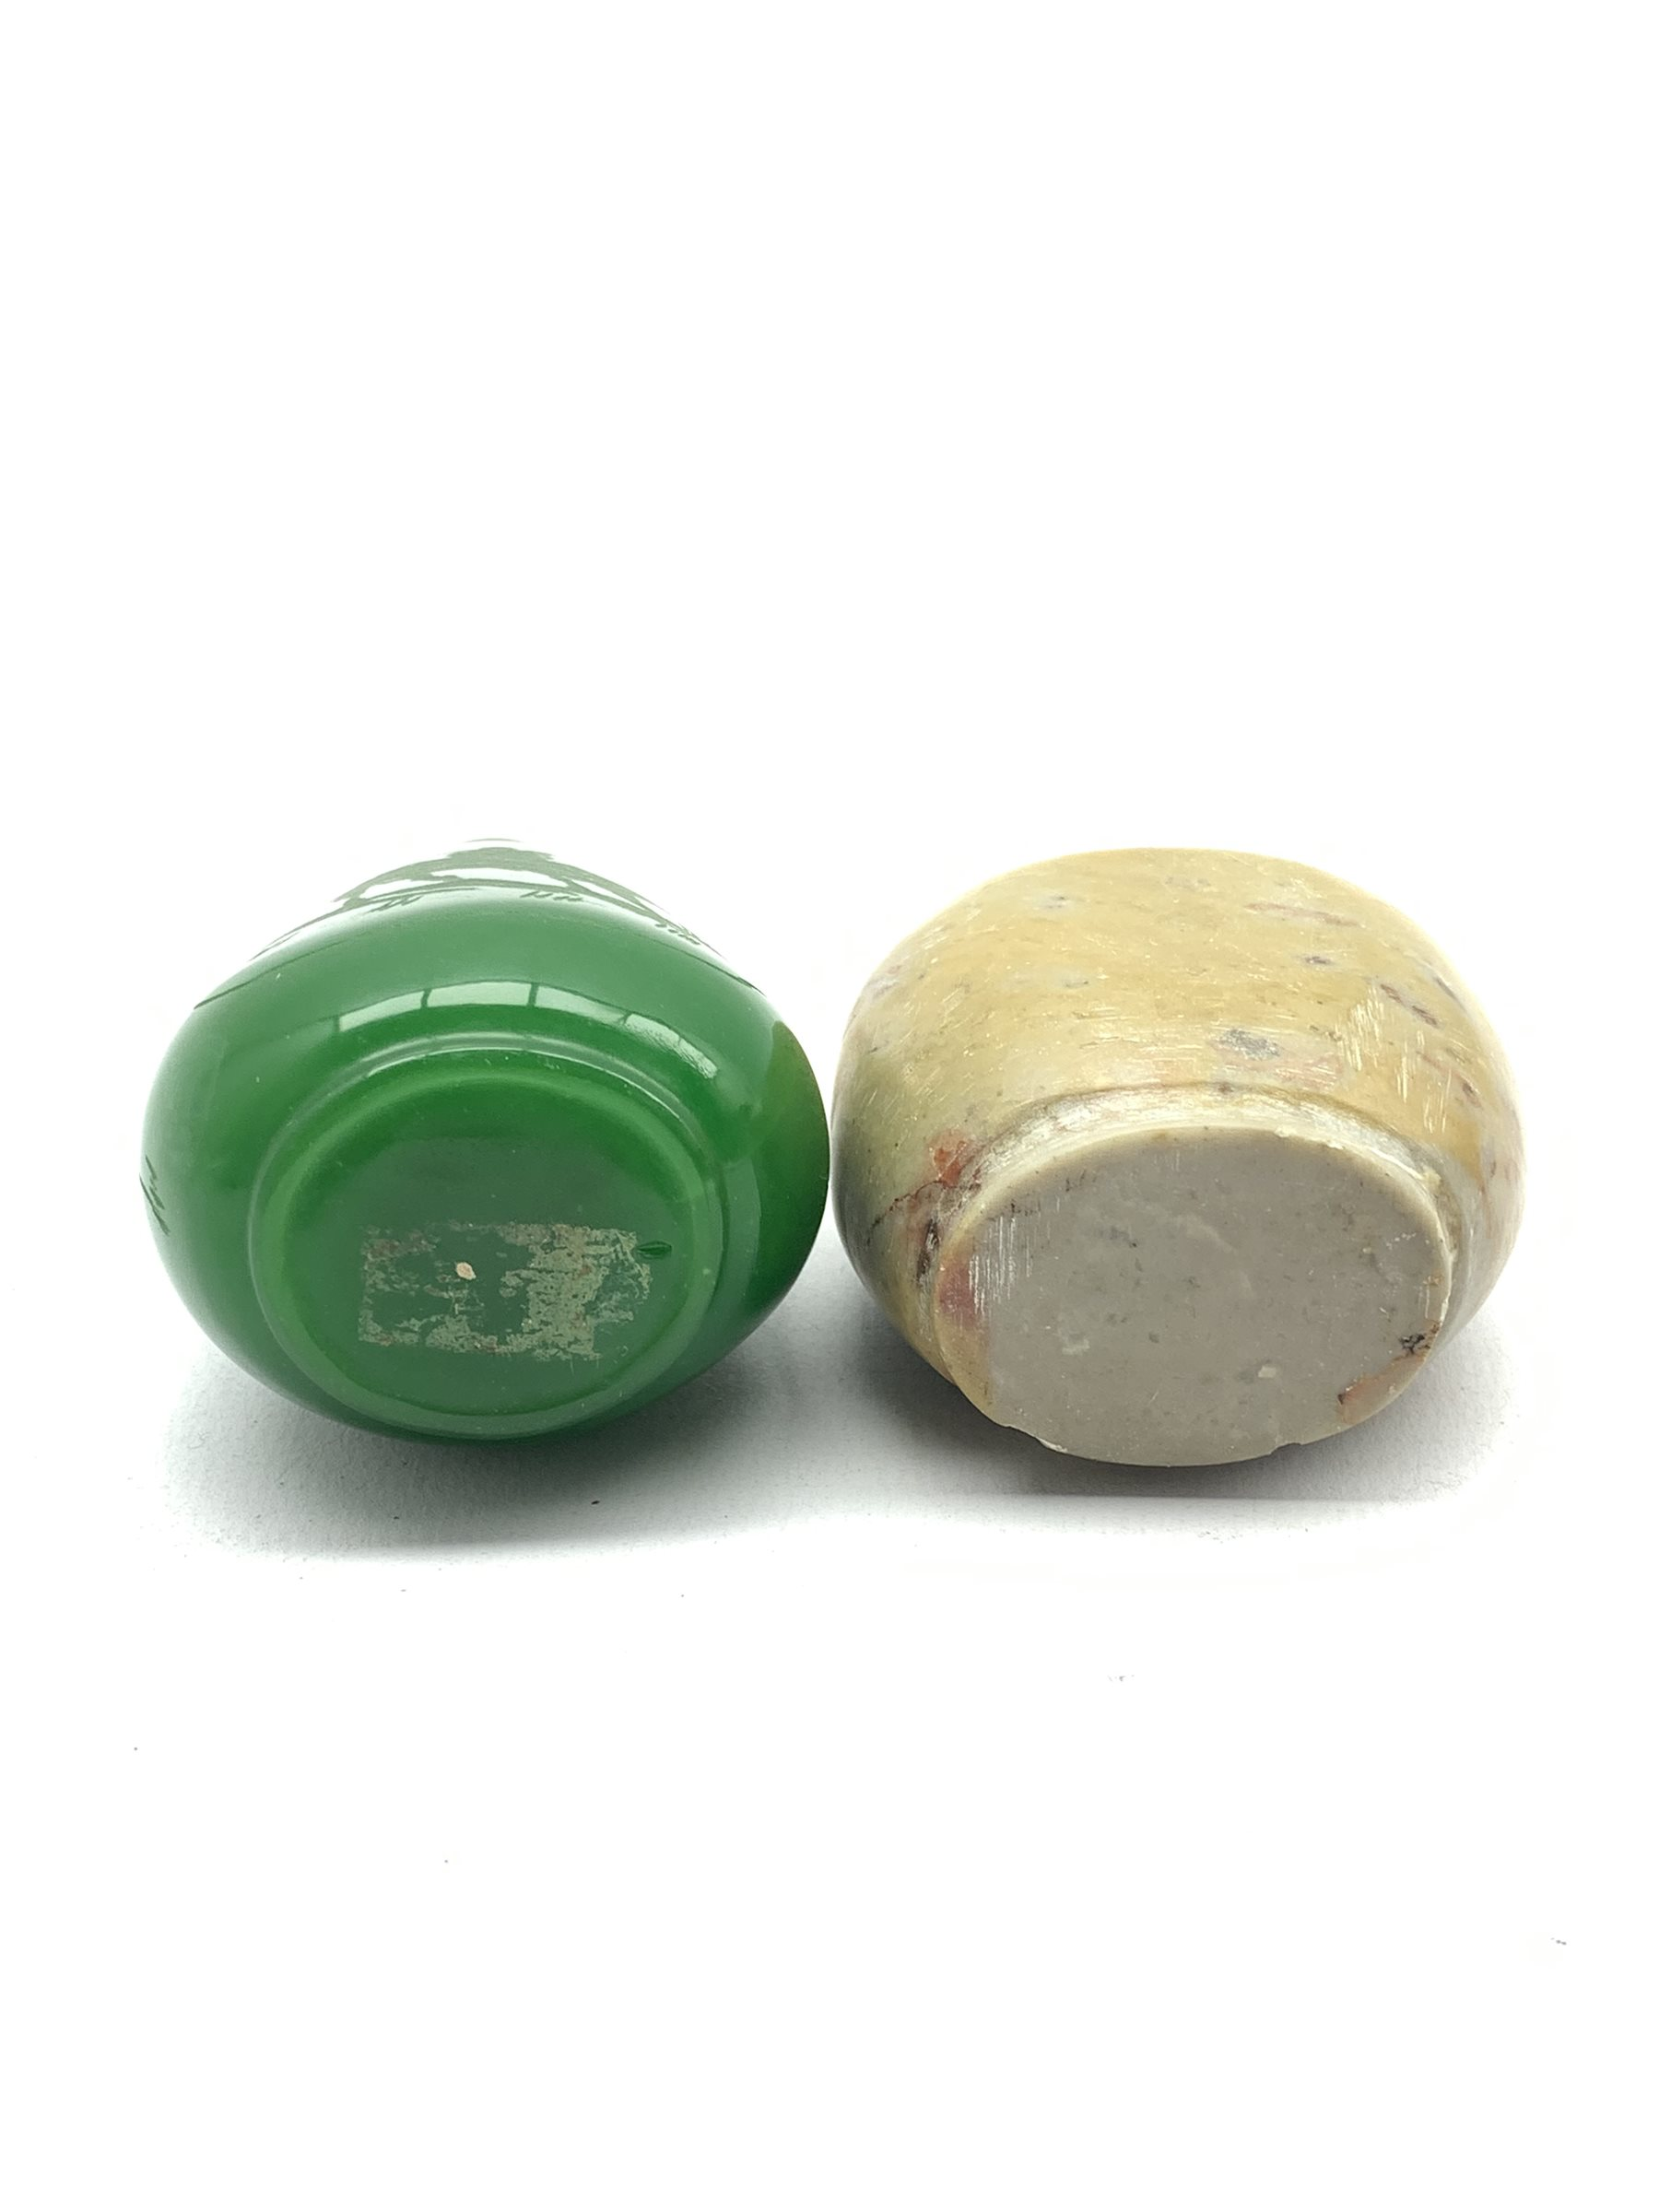 Chinese green hardstone snuff bottle - Image 2 of 3